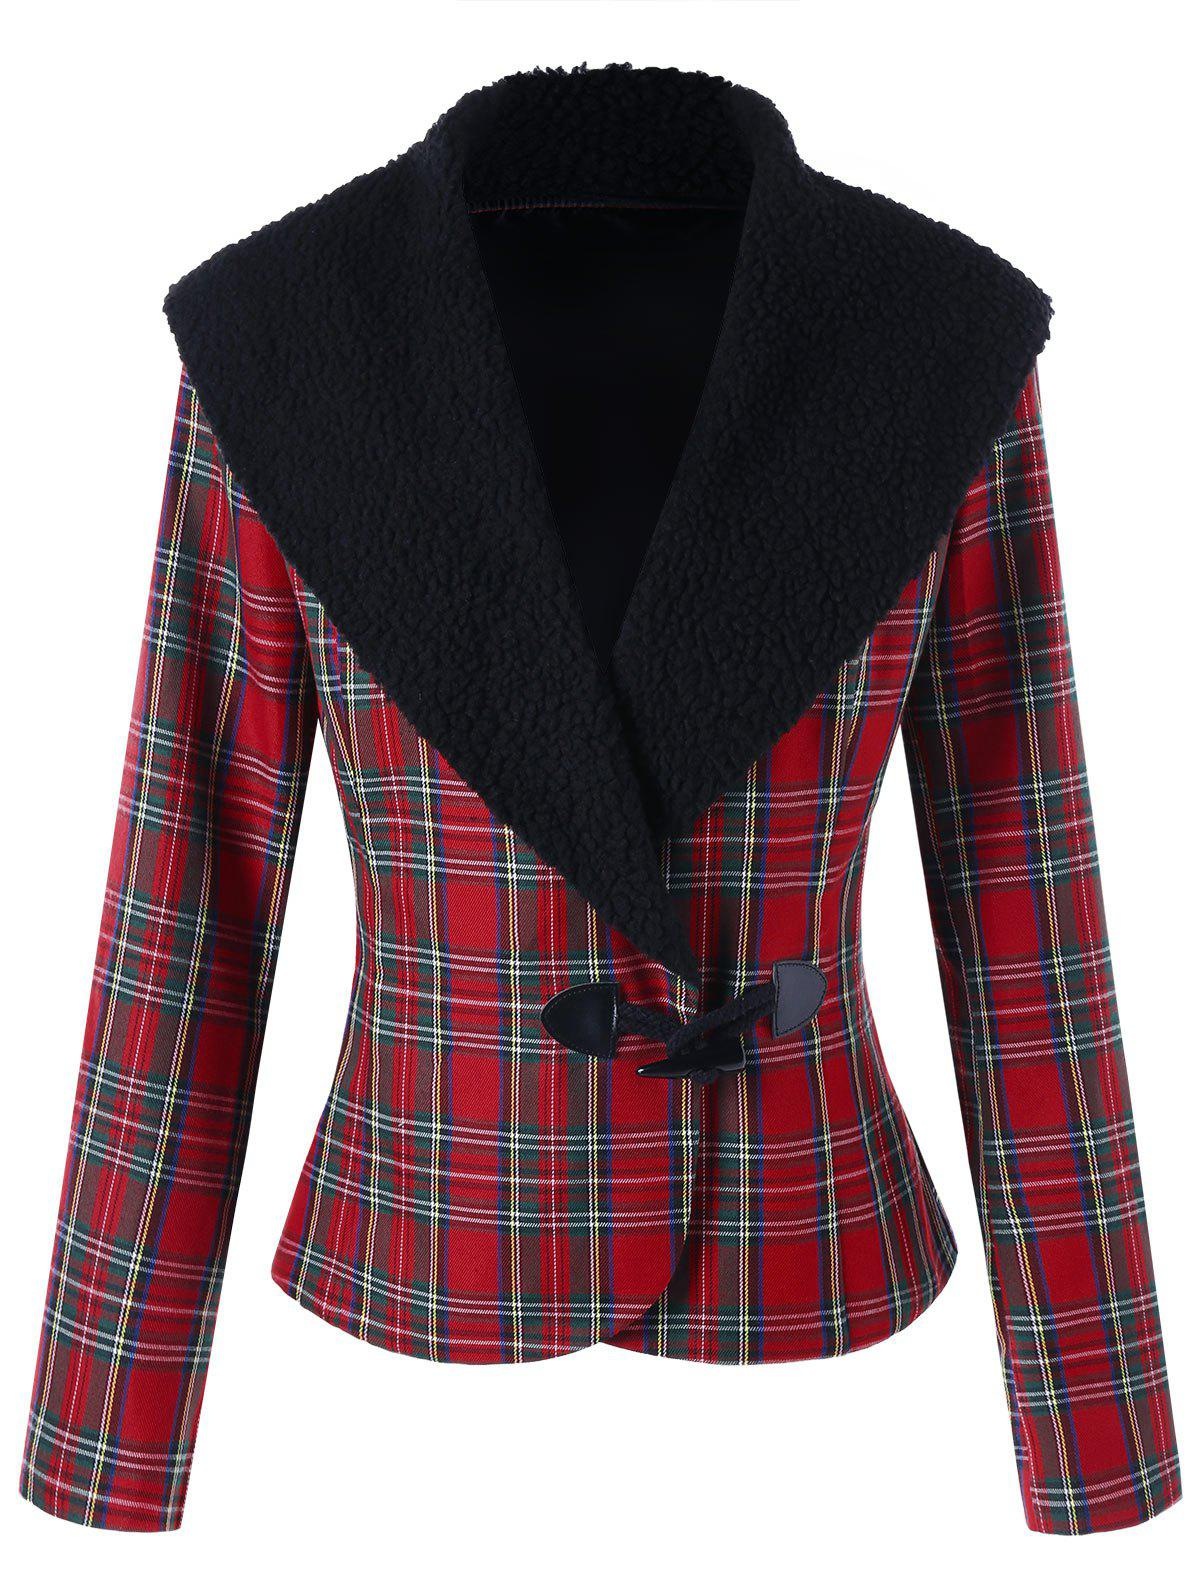 New Plaid Horn Button Jacket